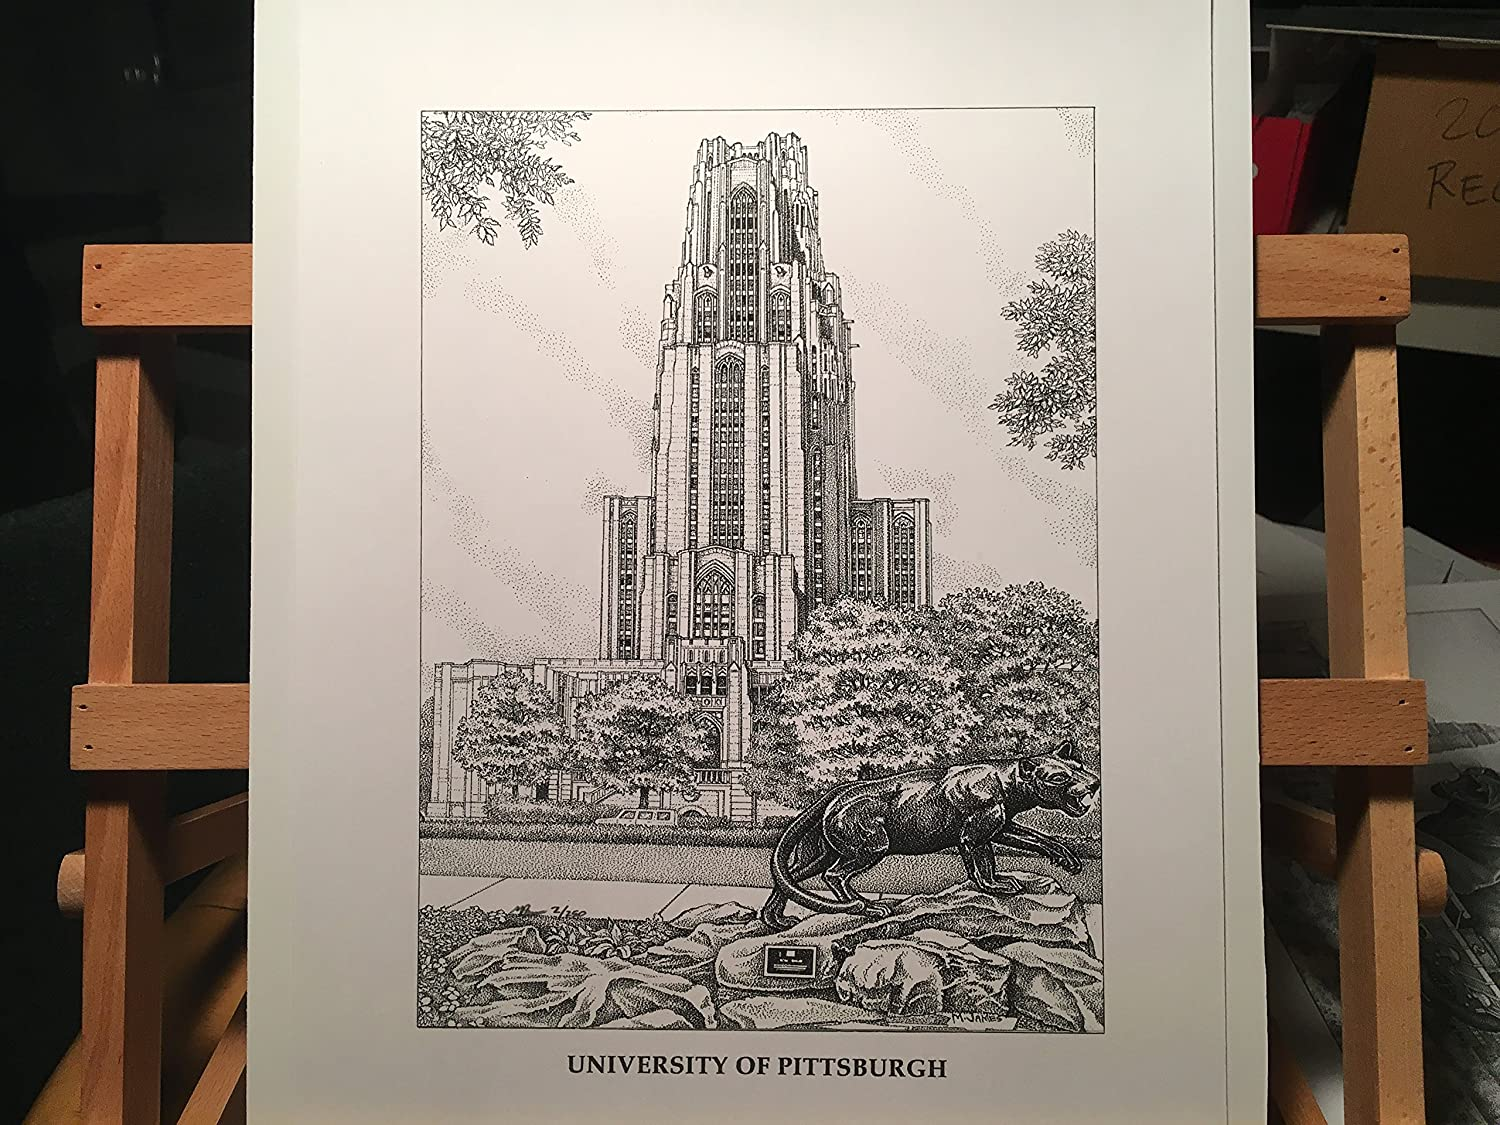 University of Pittsburgh - Cathedral of Learning 11x14 hand-drawn pen and ink print